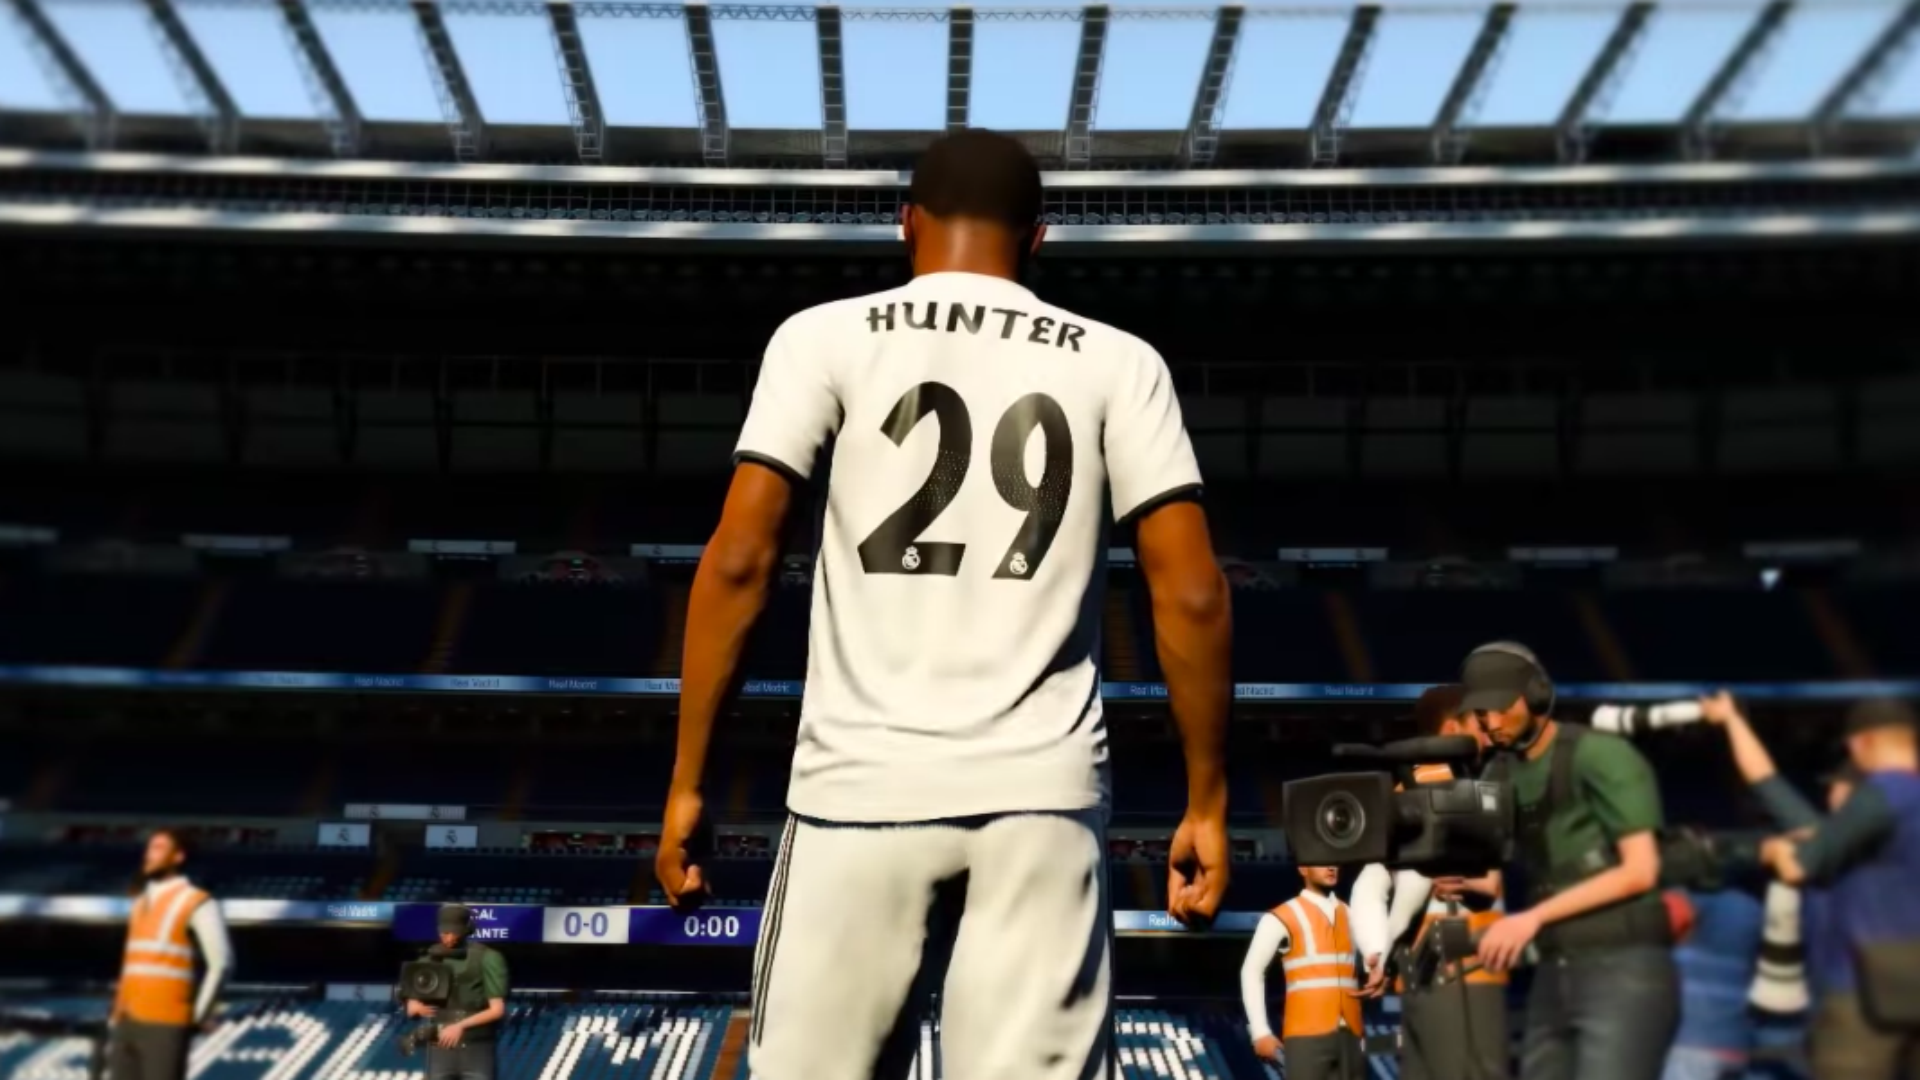 FIFA 20 The Journey: Alex Hunter's story so far & what to expect in the final season